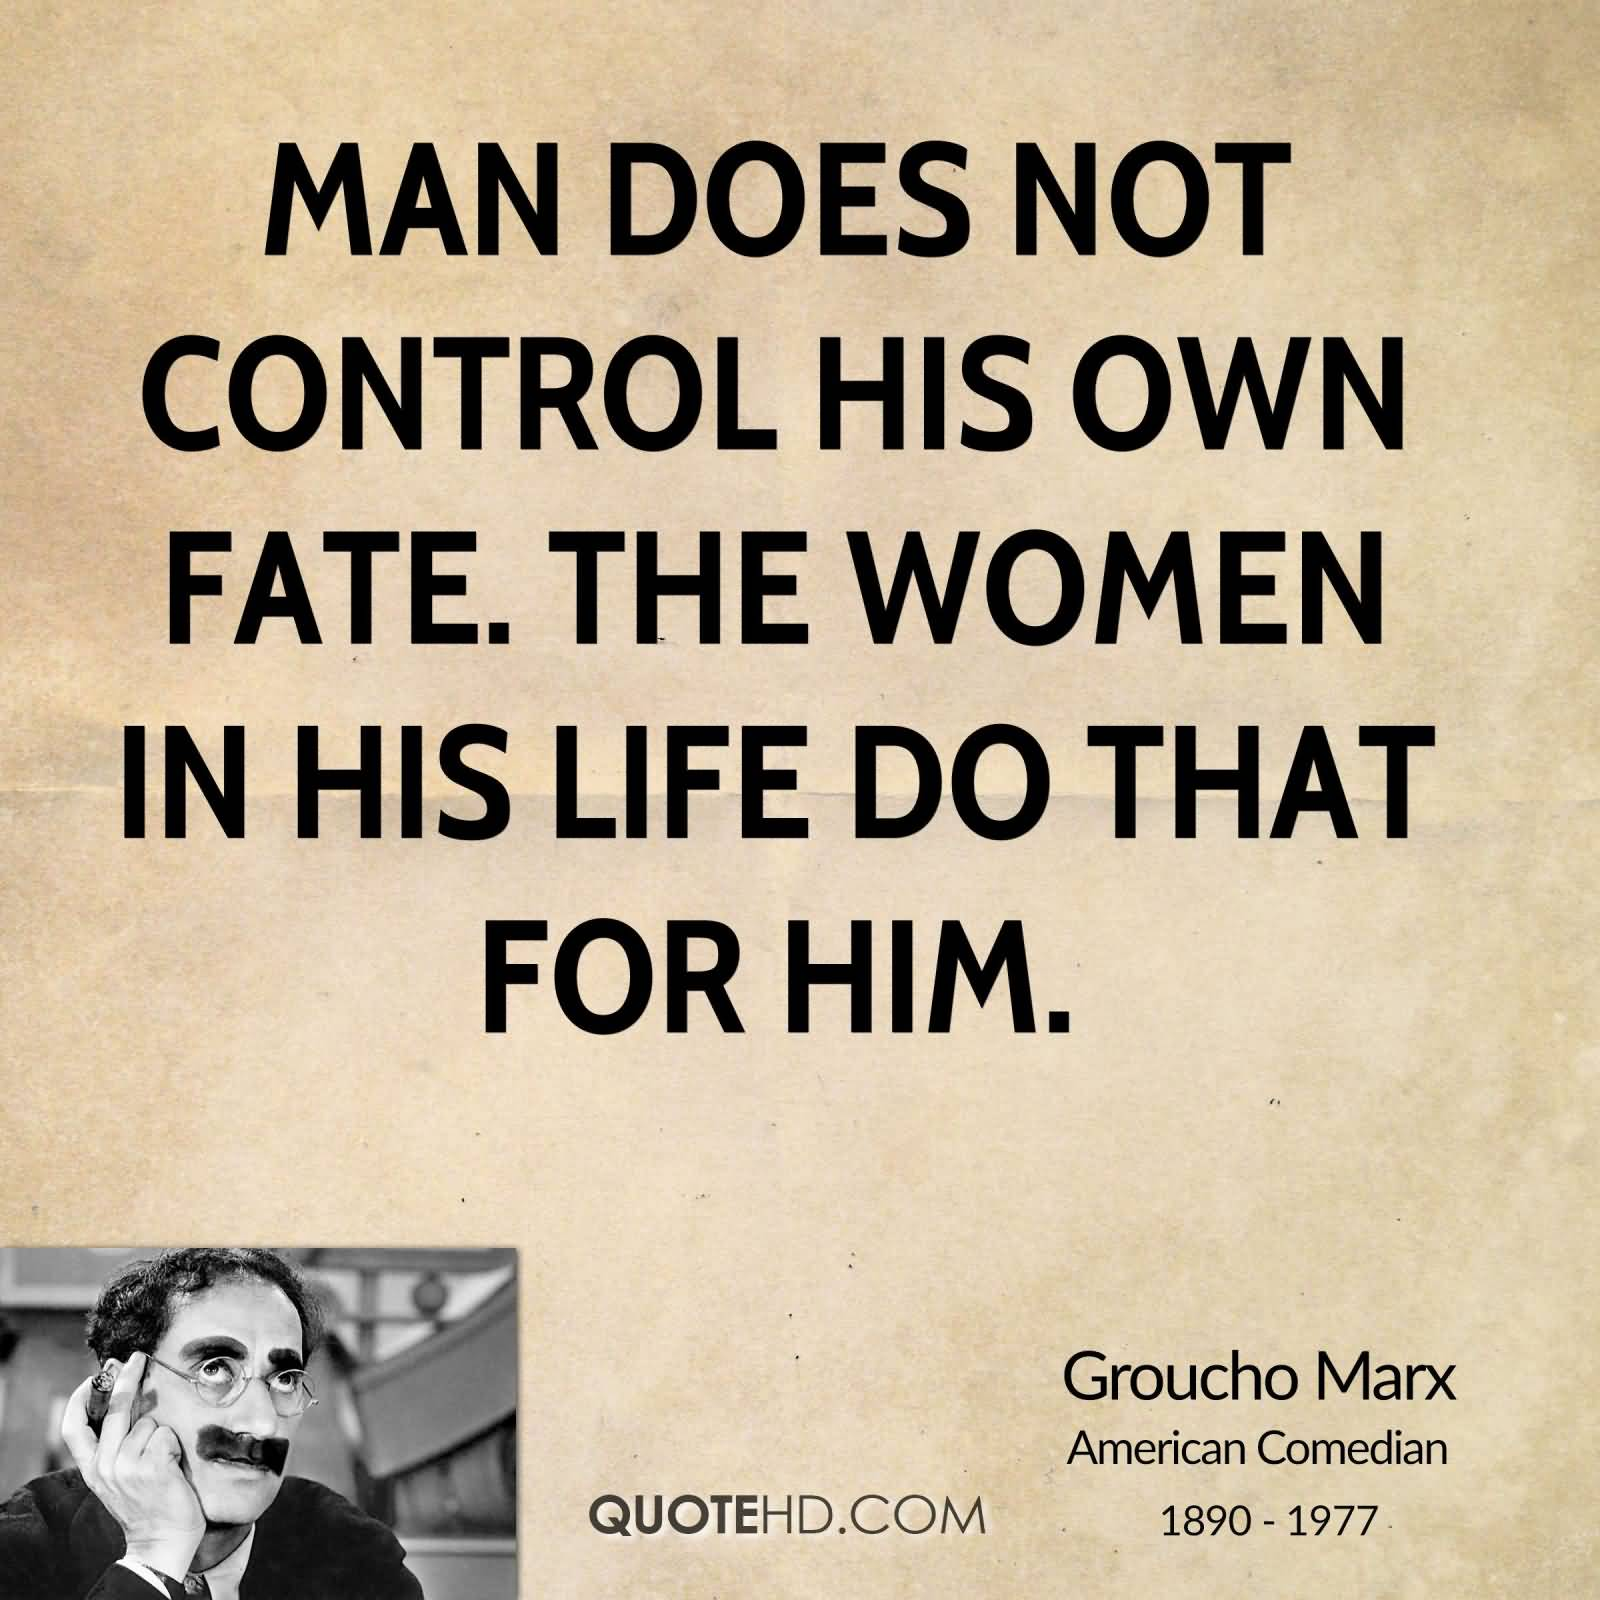 Man does not control his own fate. The women in his life do that for him. Groucho Marx